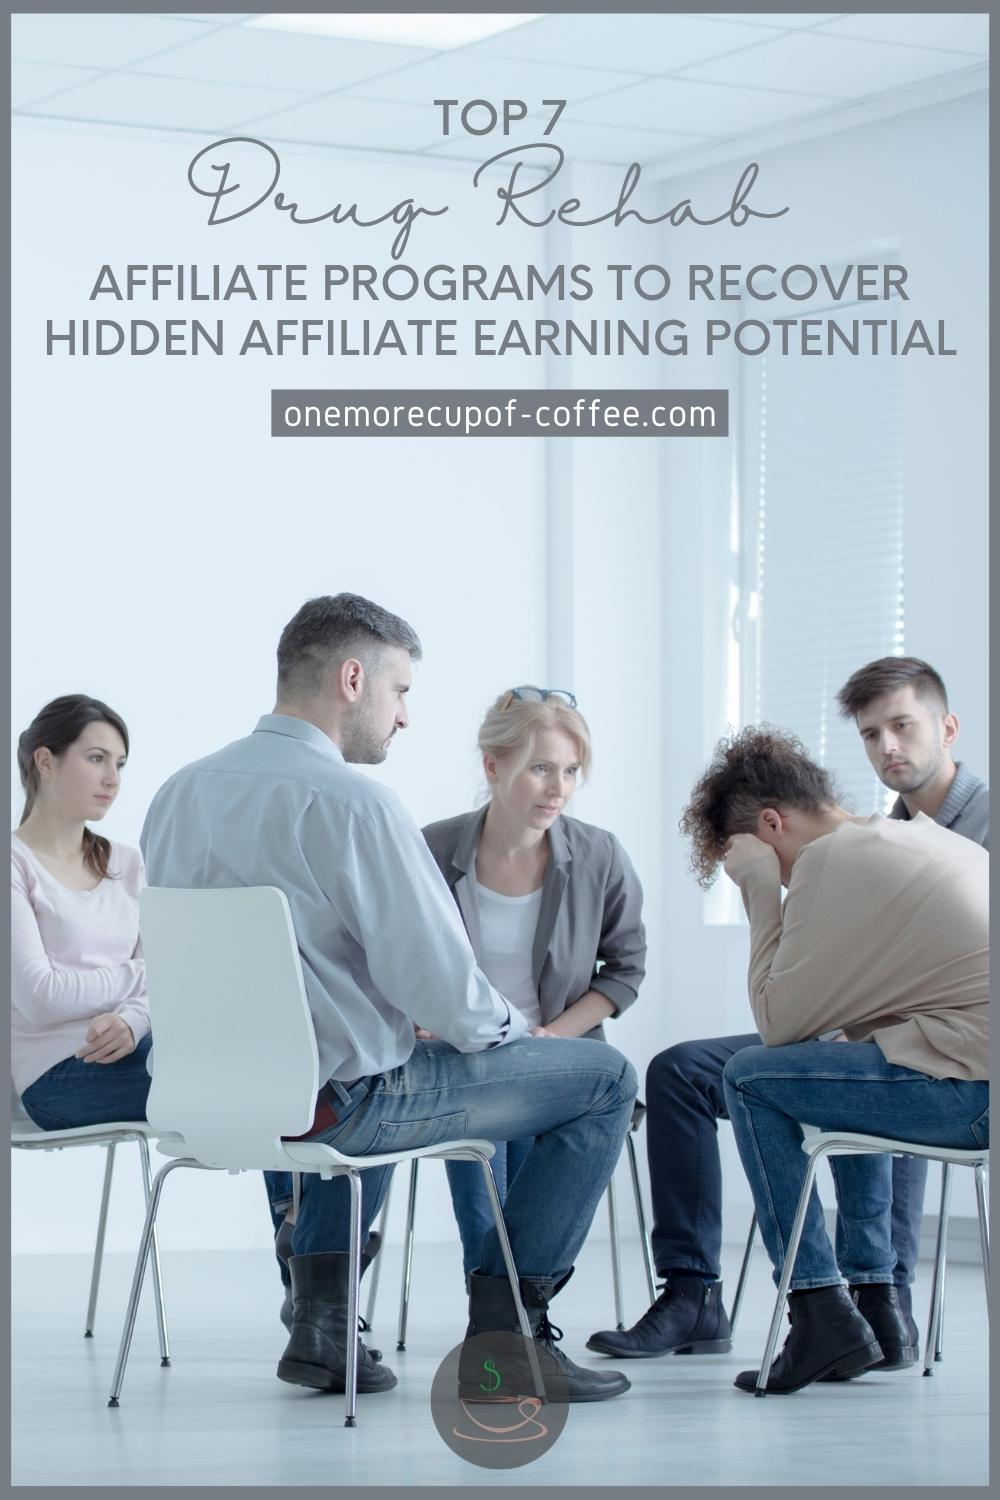 """group of men and women in a group therapy, with text overlay """"Top 7 Drug Rehab Affiliate Programs To Recover Hidden Affiliate Earning Potential"""""""